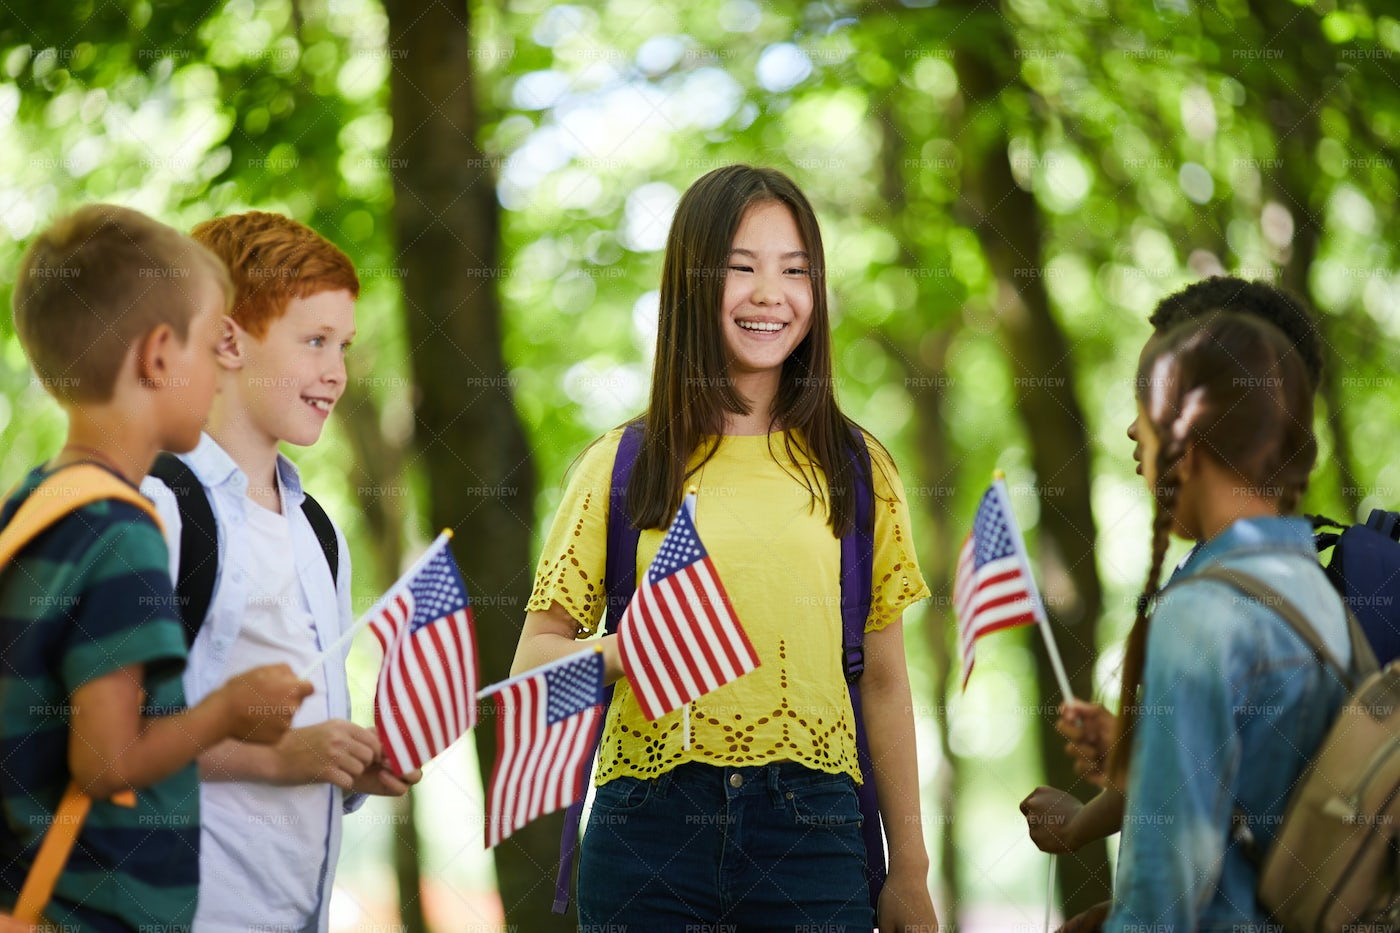 Kids Chatting About America: Stock Photos